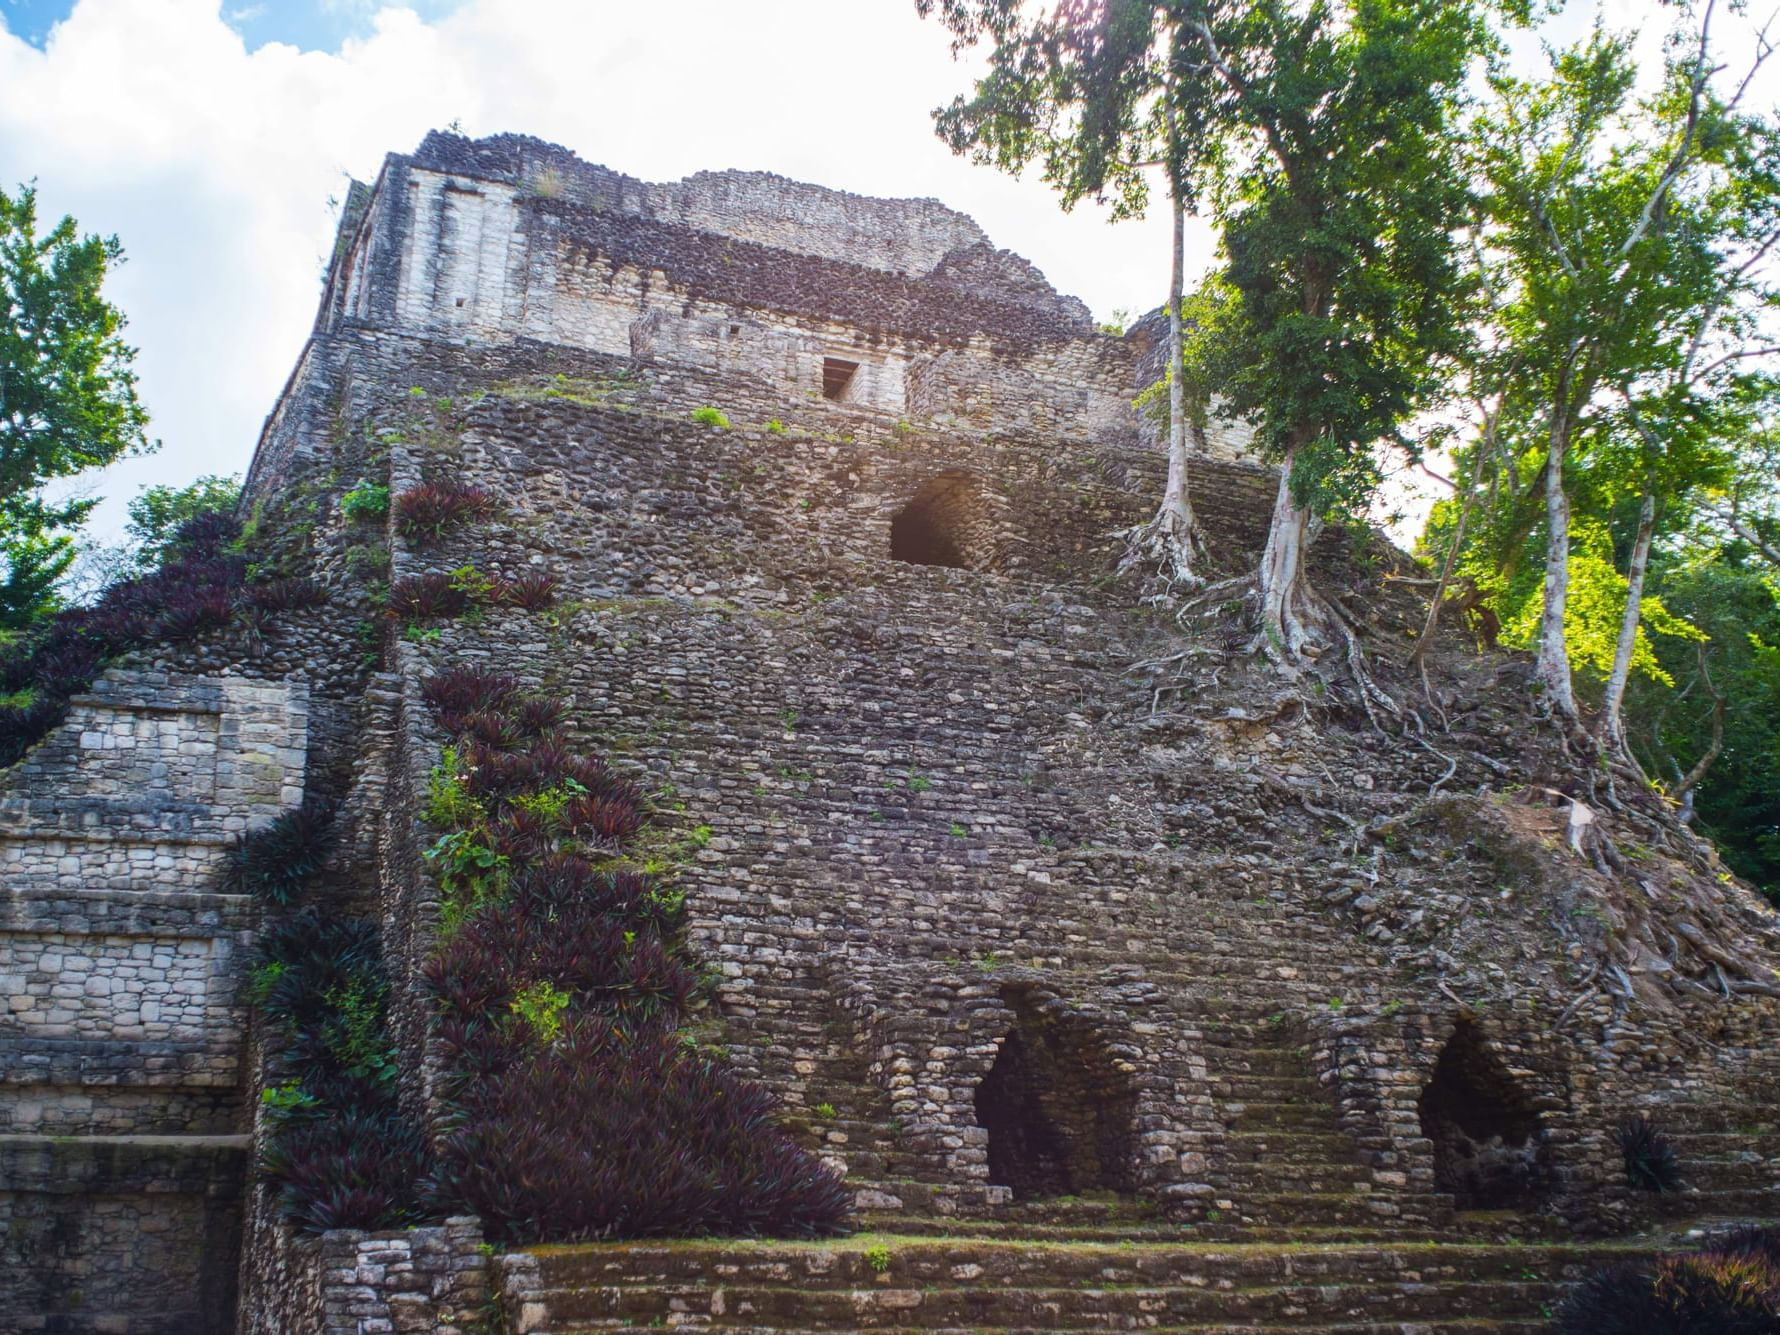 Ancient building in the Chetumal - Kohunlich